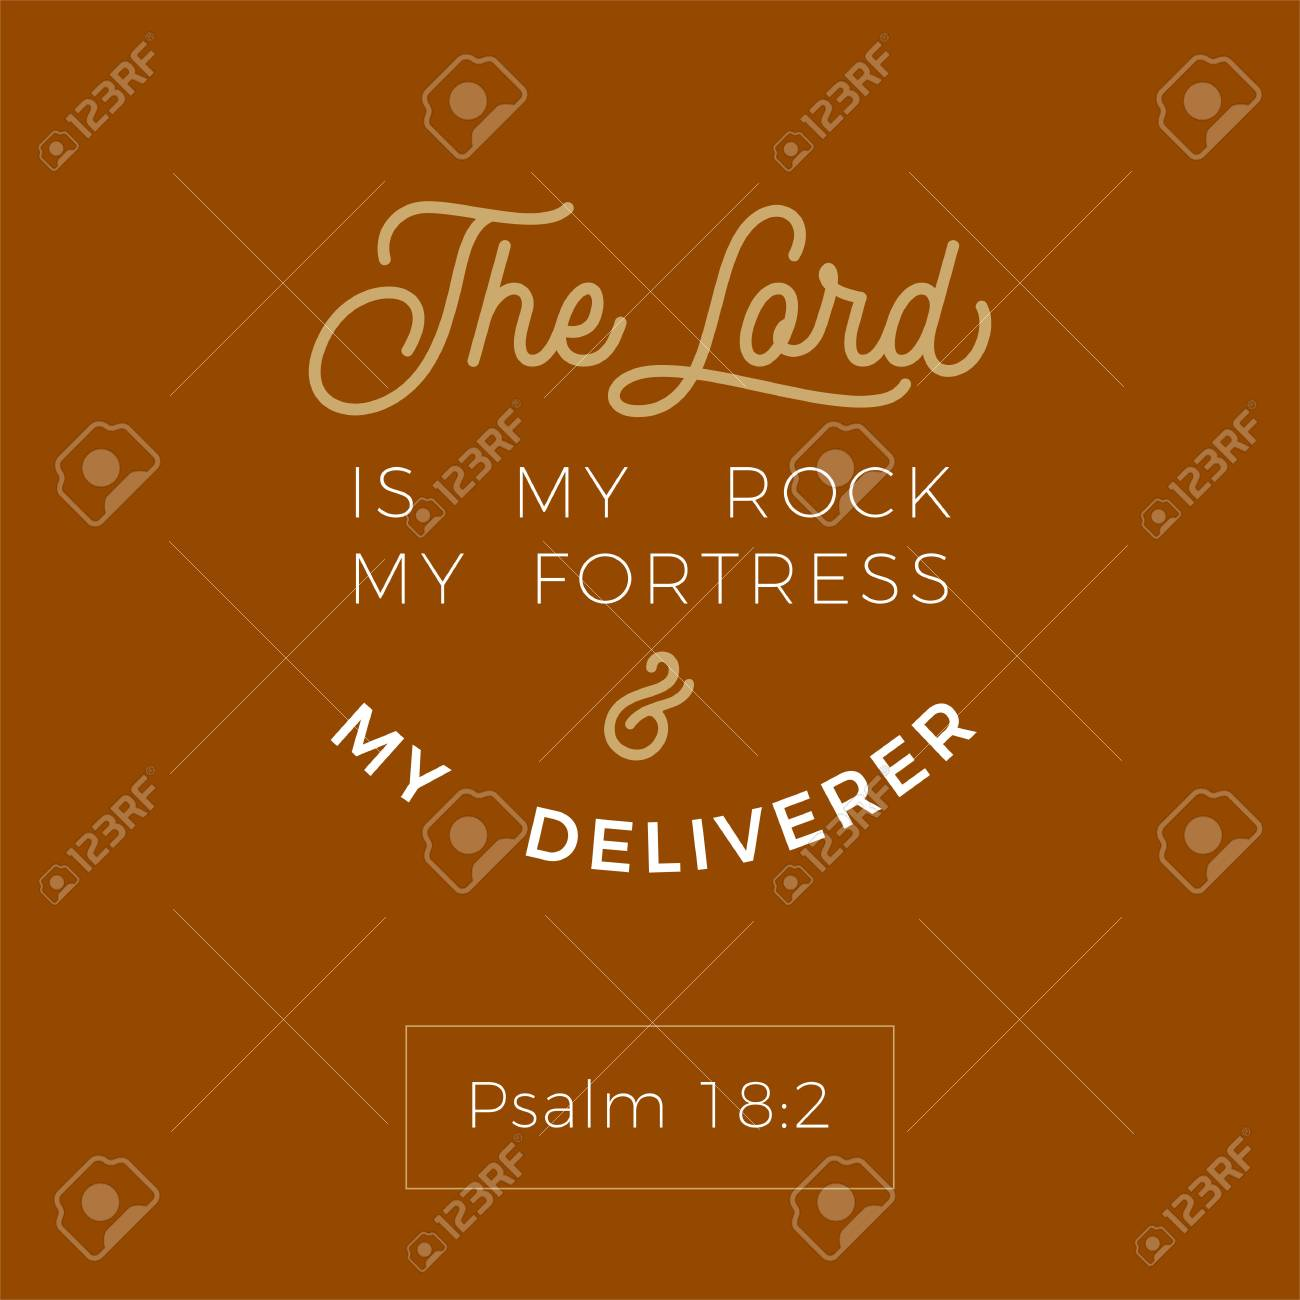 biblical scripture verse from psalm,the lord is my rock my fortress